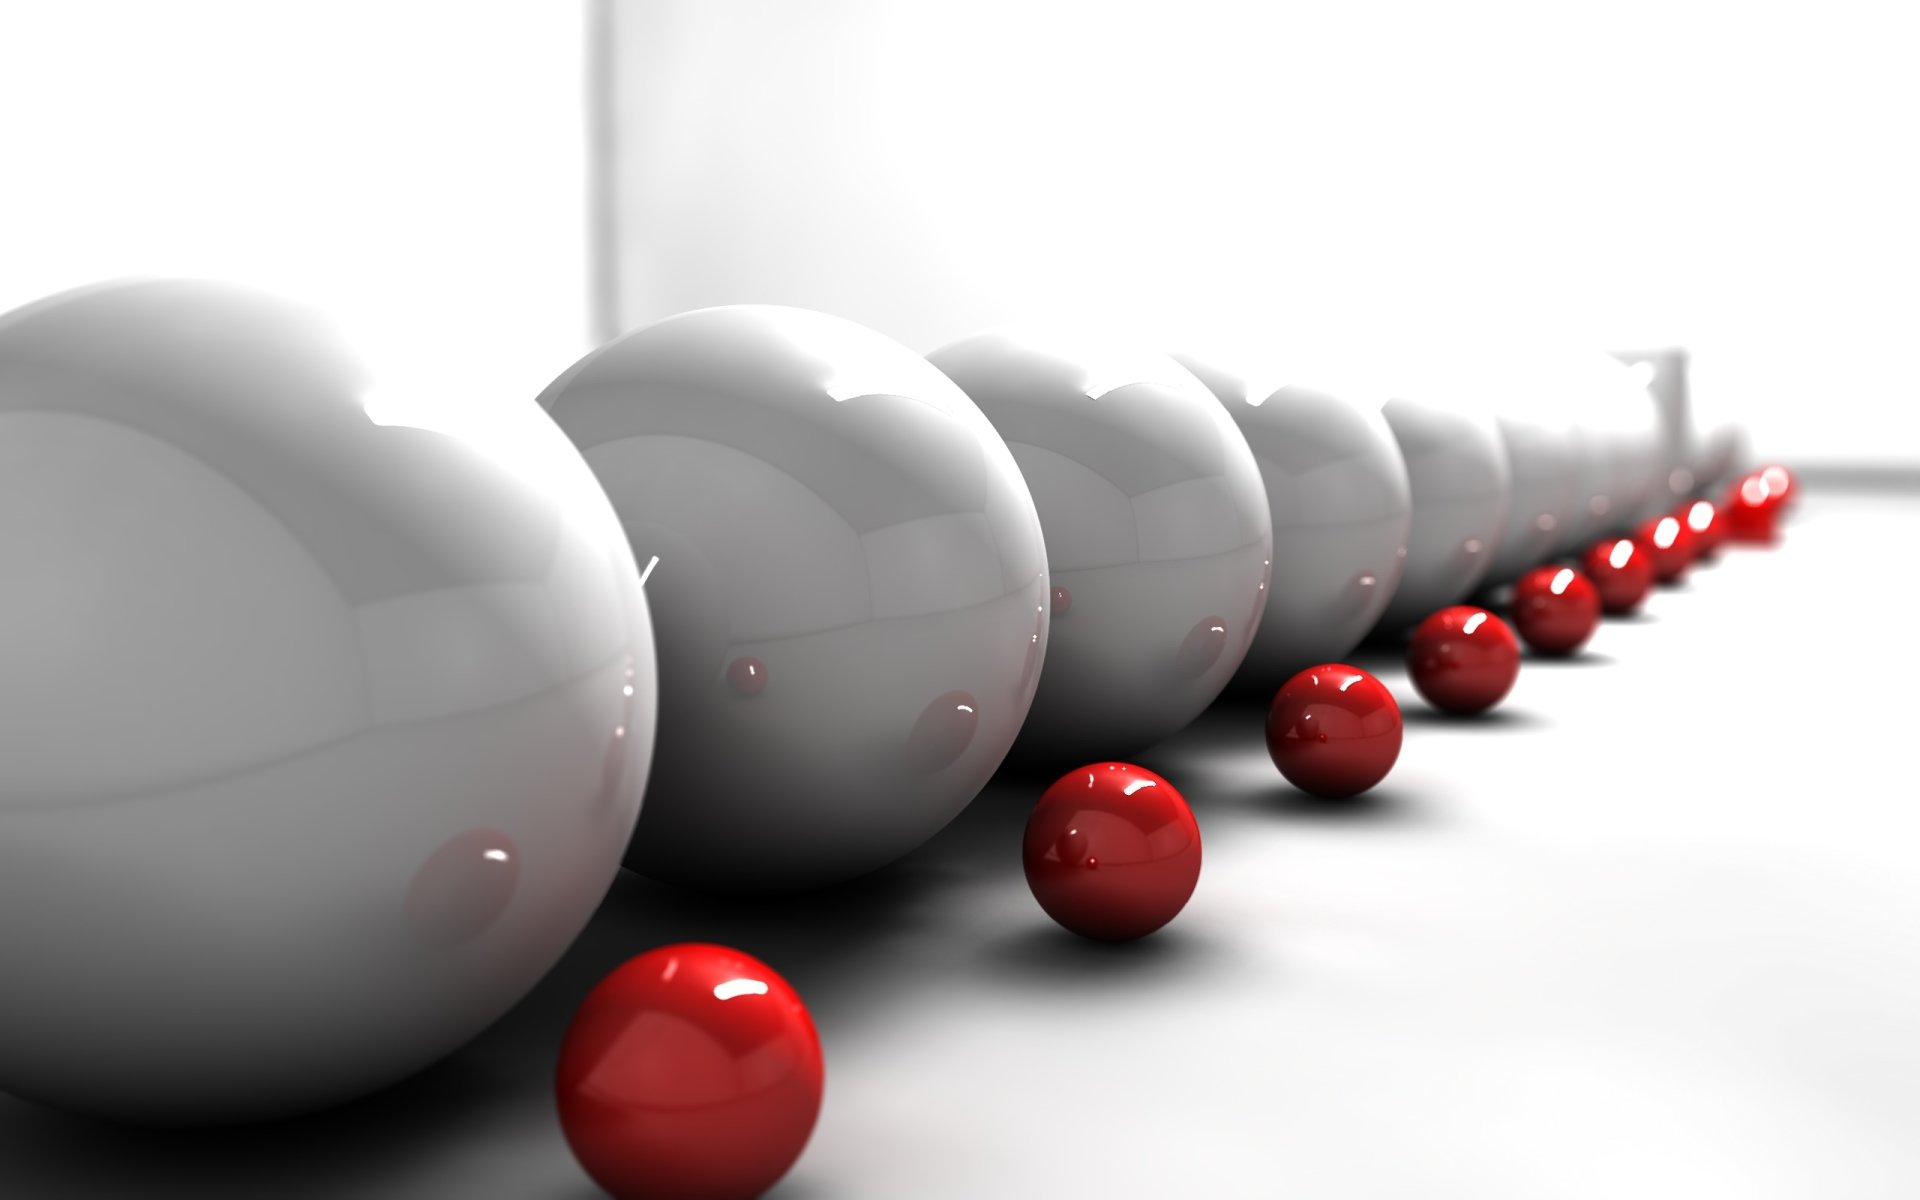 CGI - Balls  Light White Red Ball Wallpaper